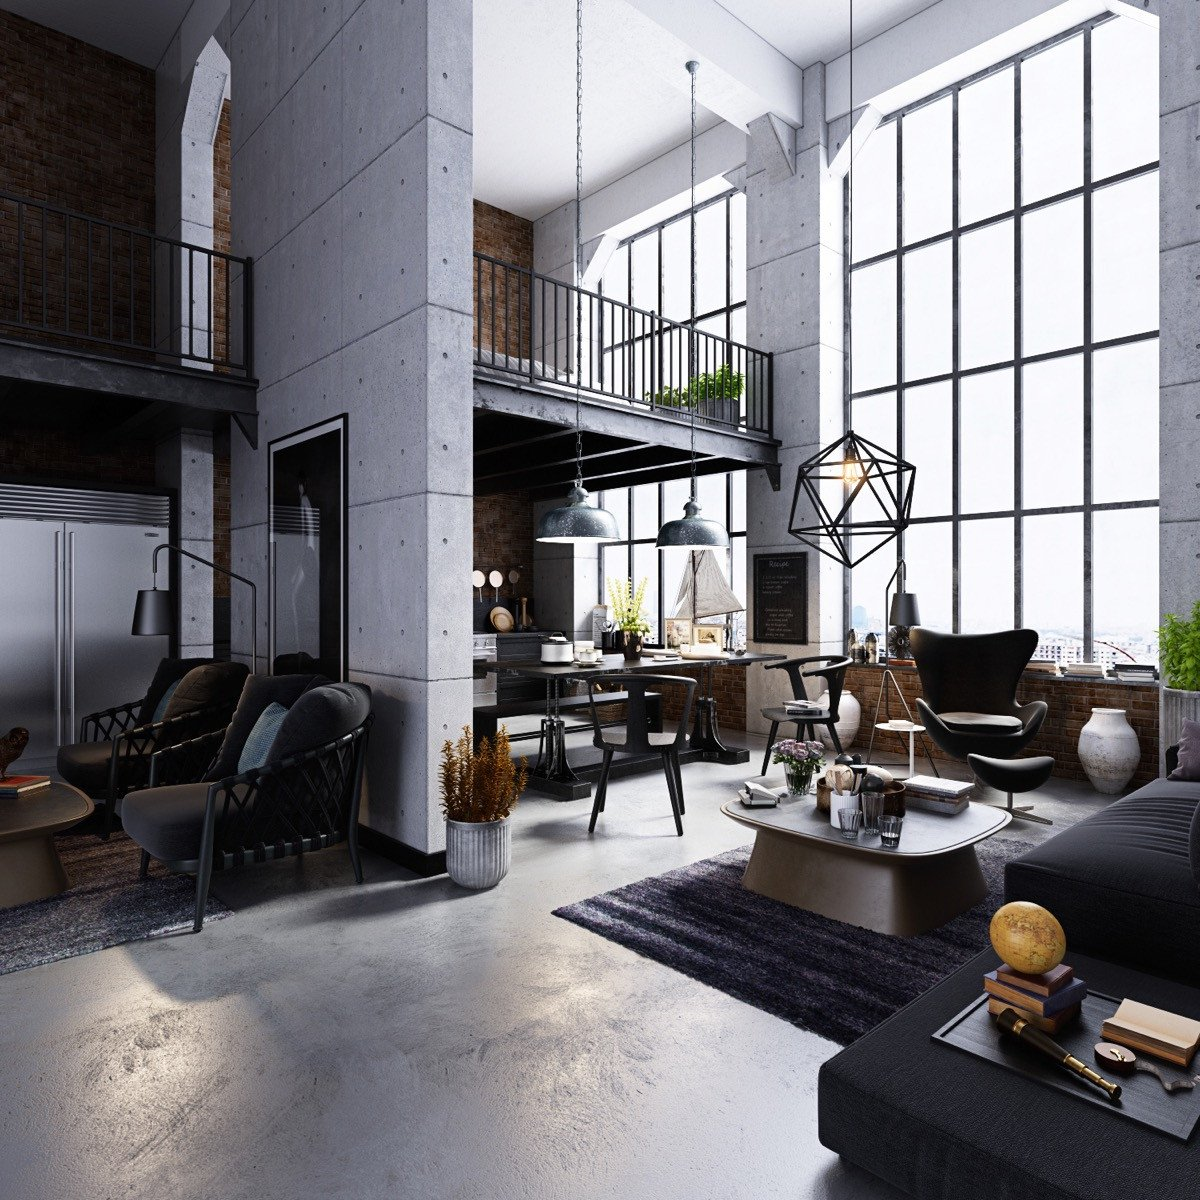 Industrial Modern Living Room Decorating Ideas Beautiful Industrial Style Living Room Design the Essential Guide